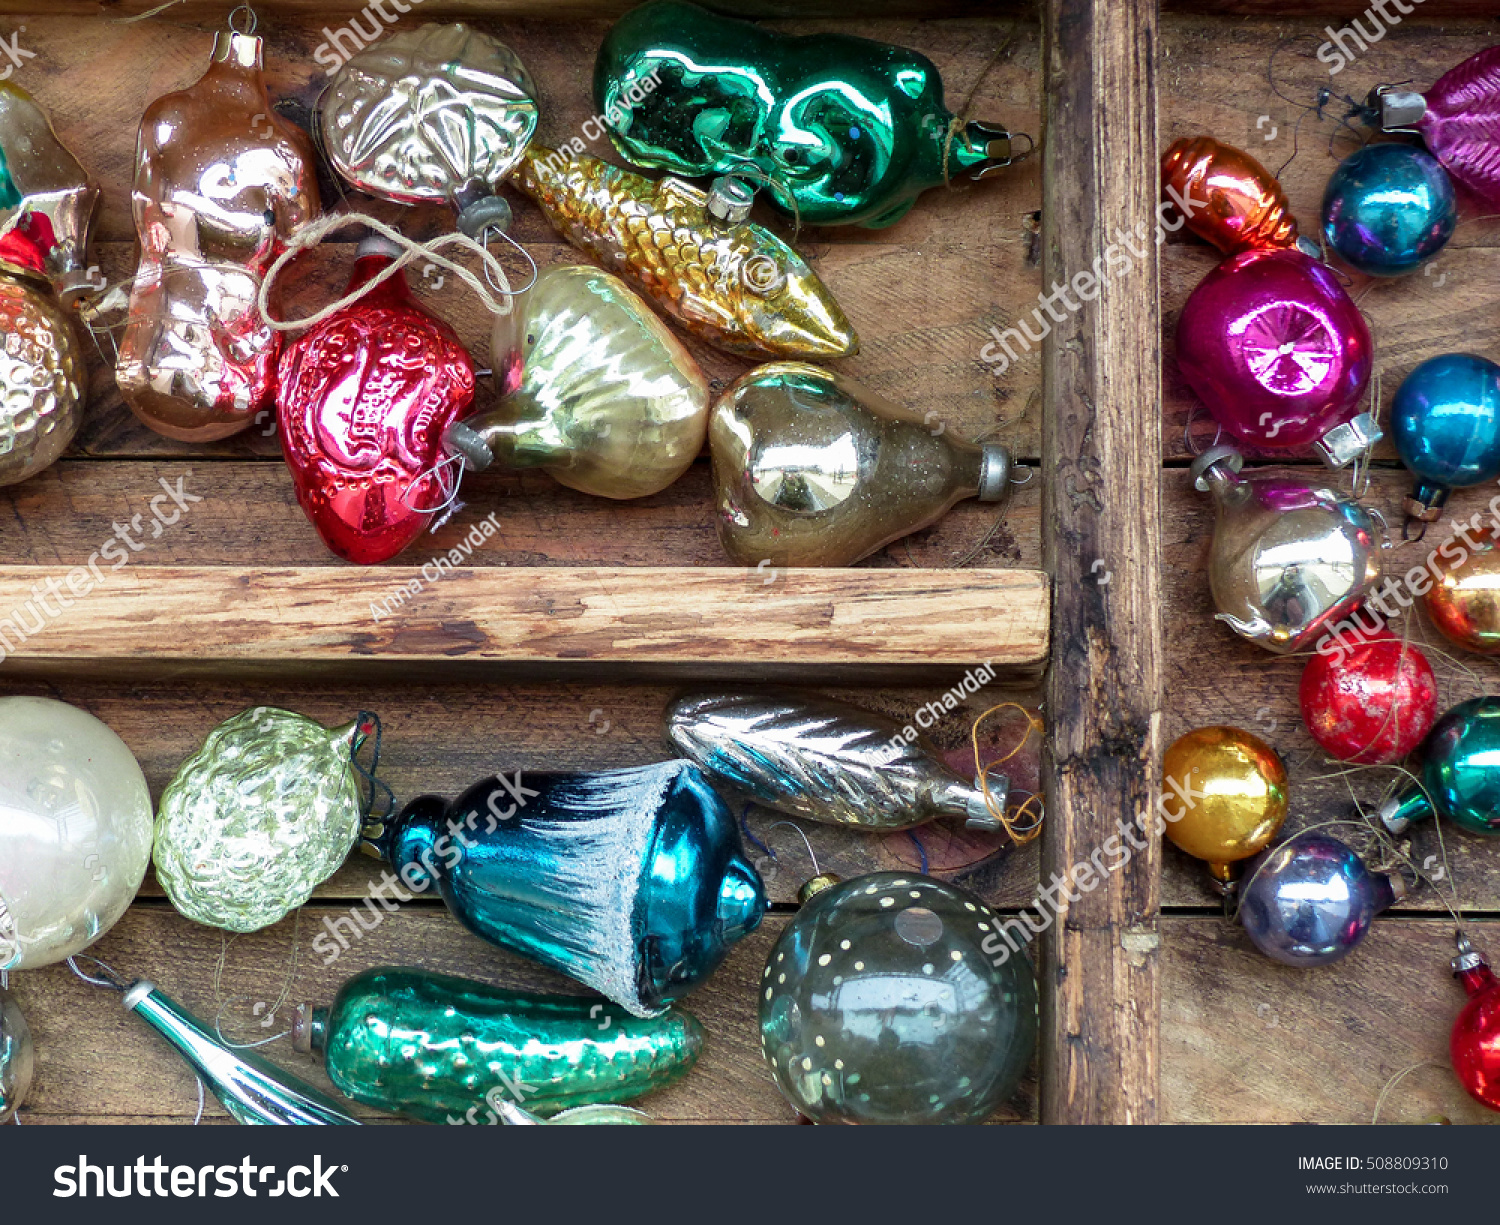 New Year Christmas Vintage Toys Old Stock Photo (Edit Now) 508809310 ...